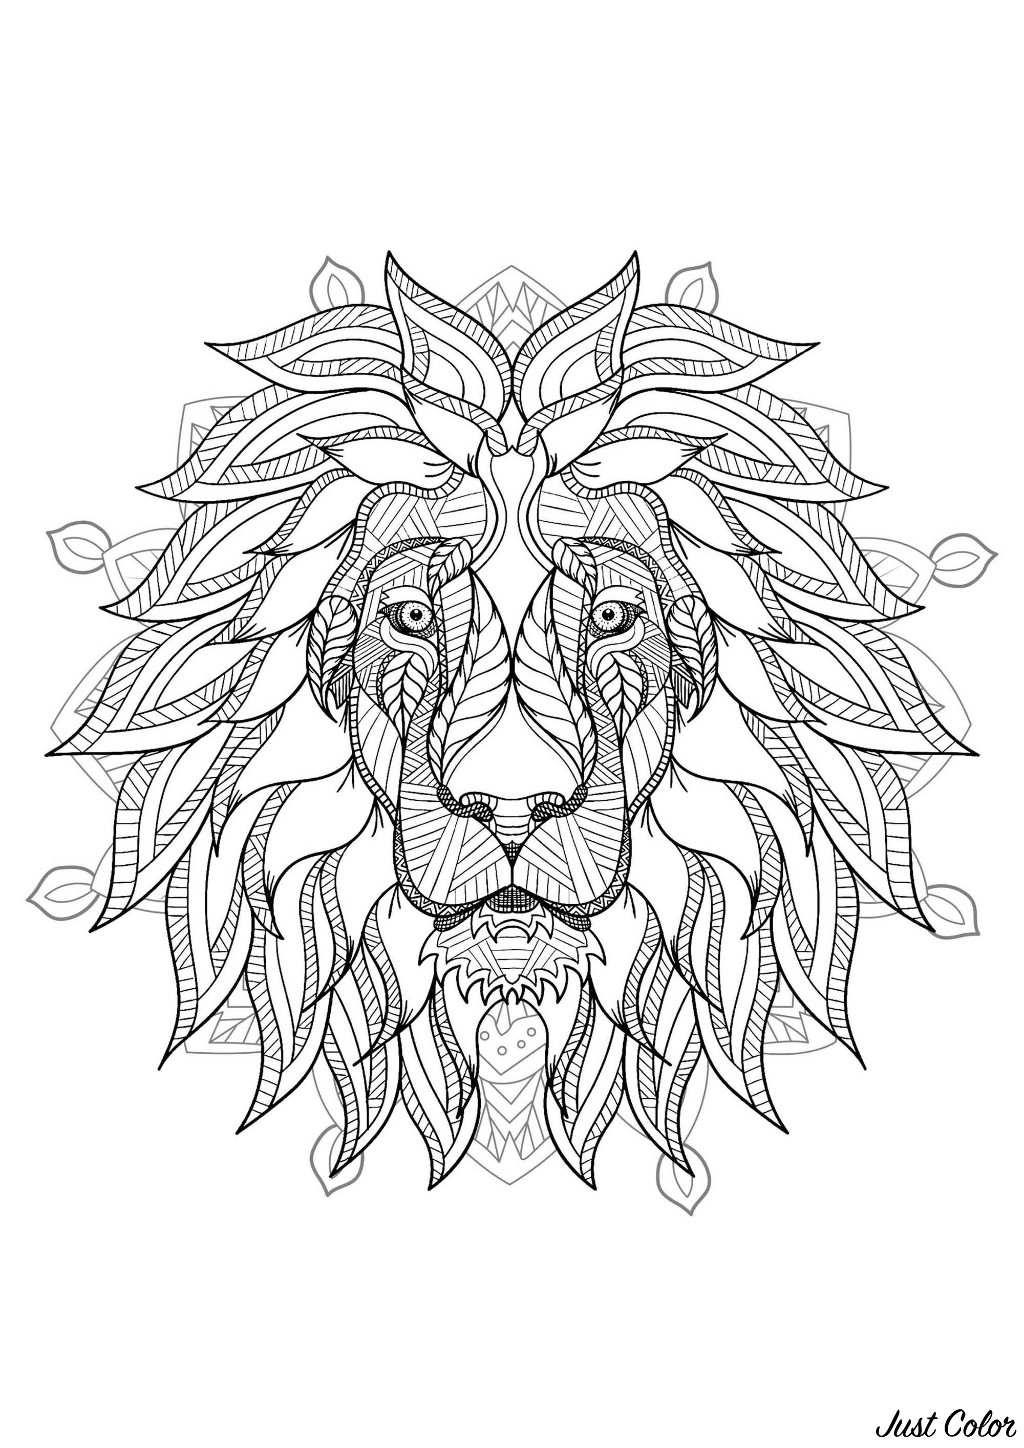 Mandala to color with very elegant Lion head and beautiful vegetal patterns in background